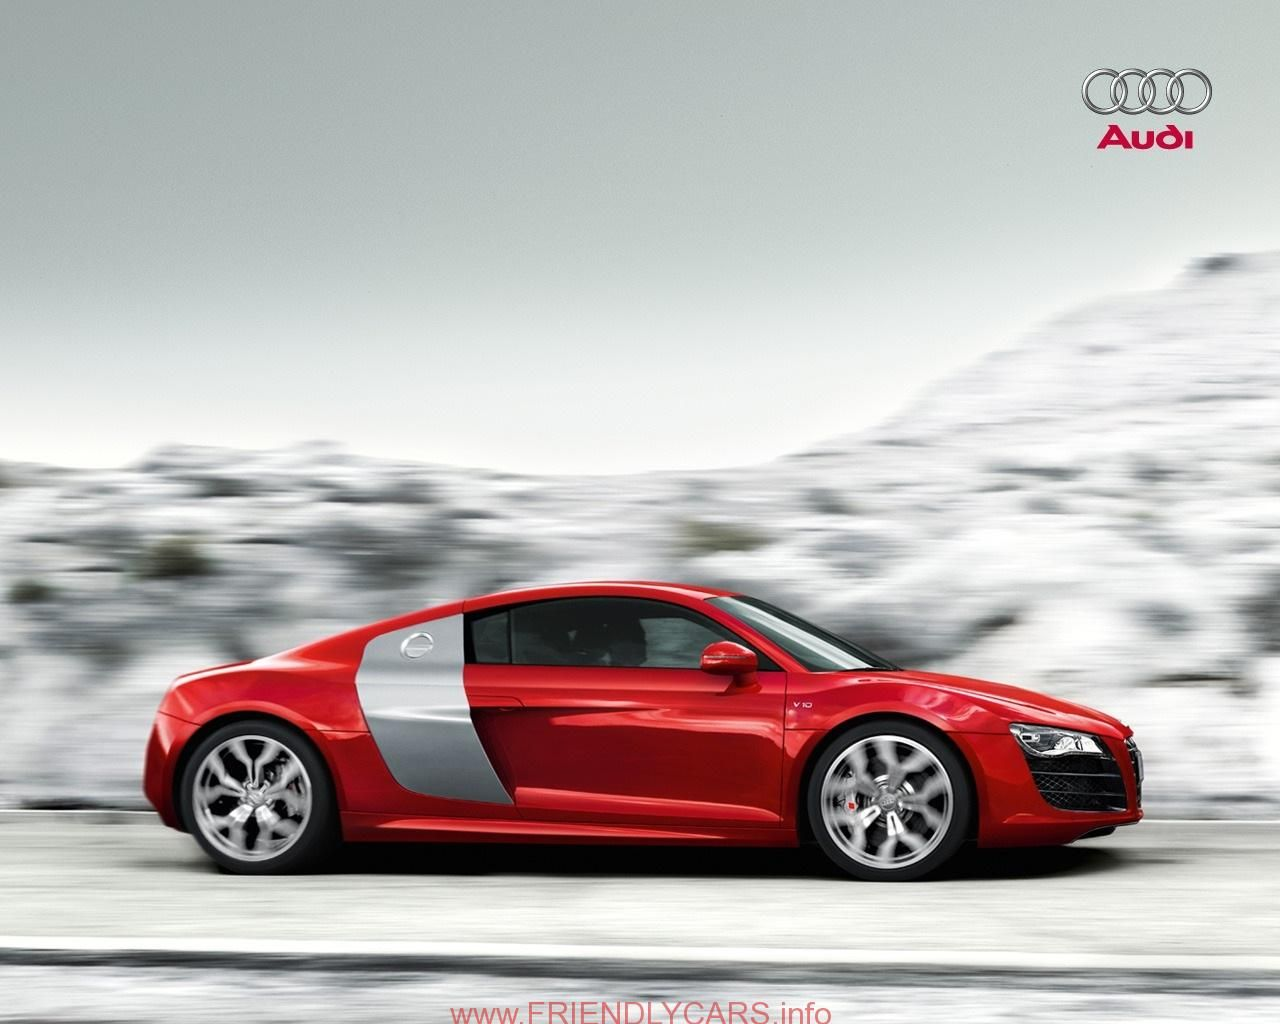 Awesome Audi R8 Iphone Wallpaper Car Images Hd Audi Wallpapers